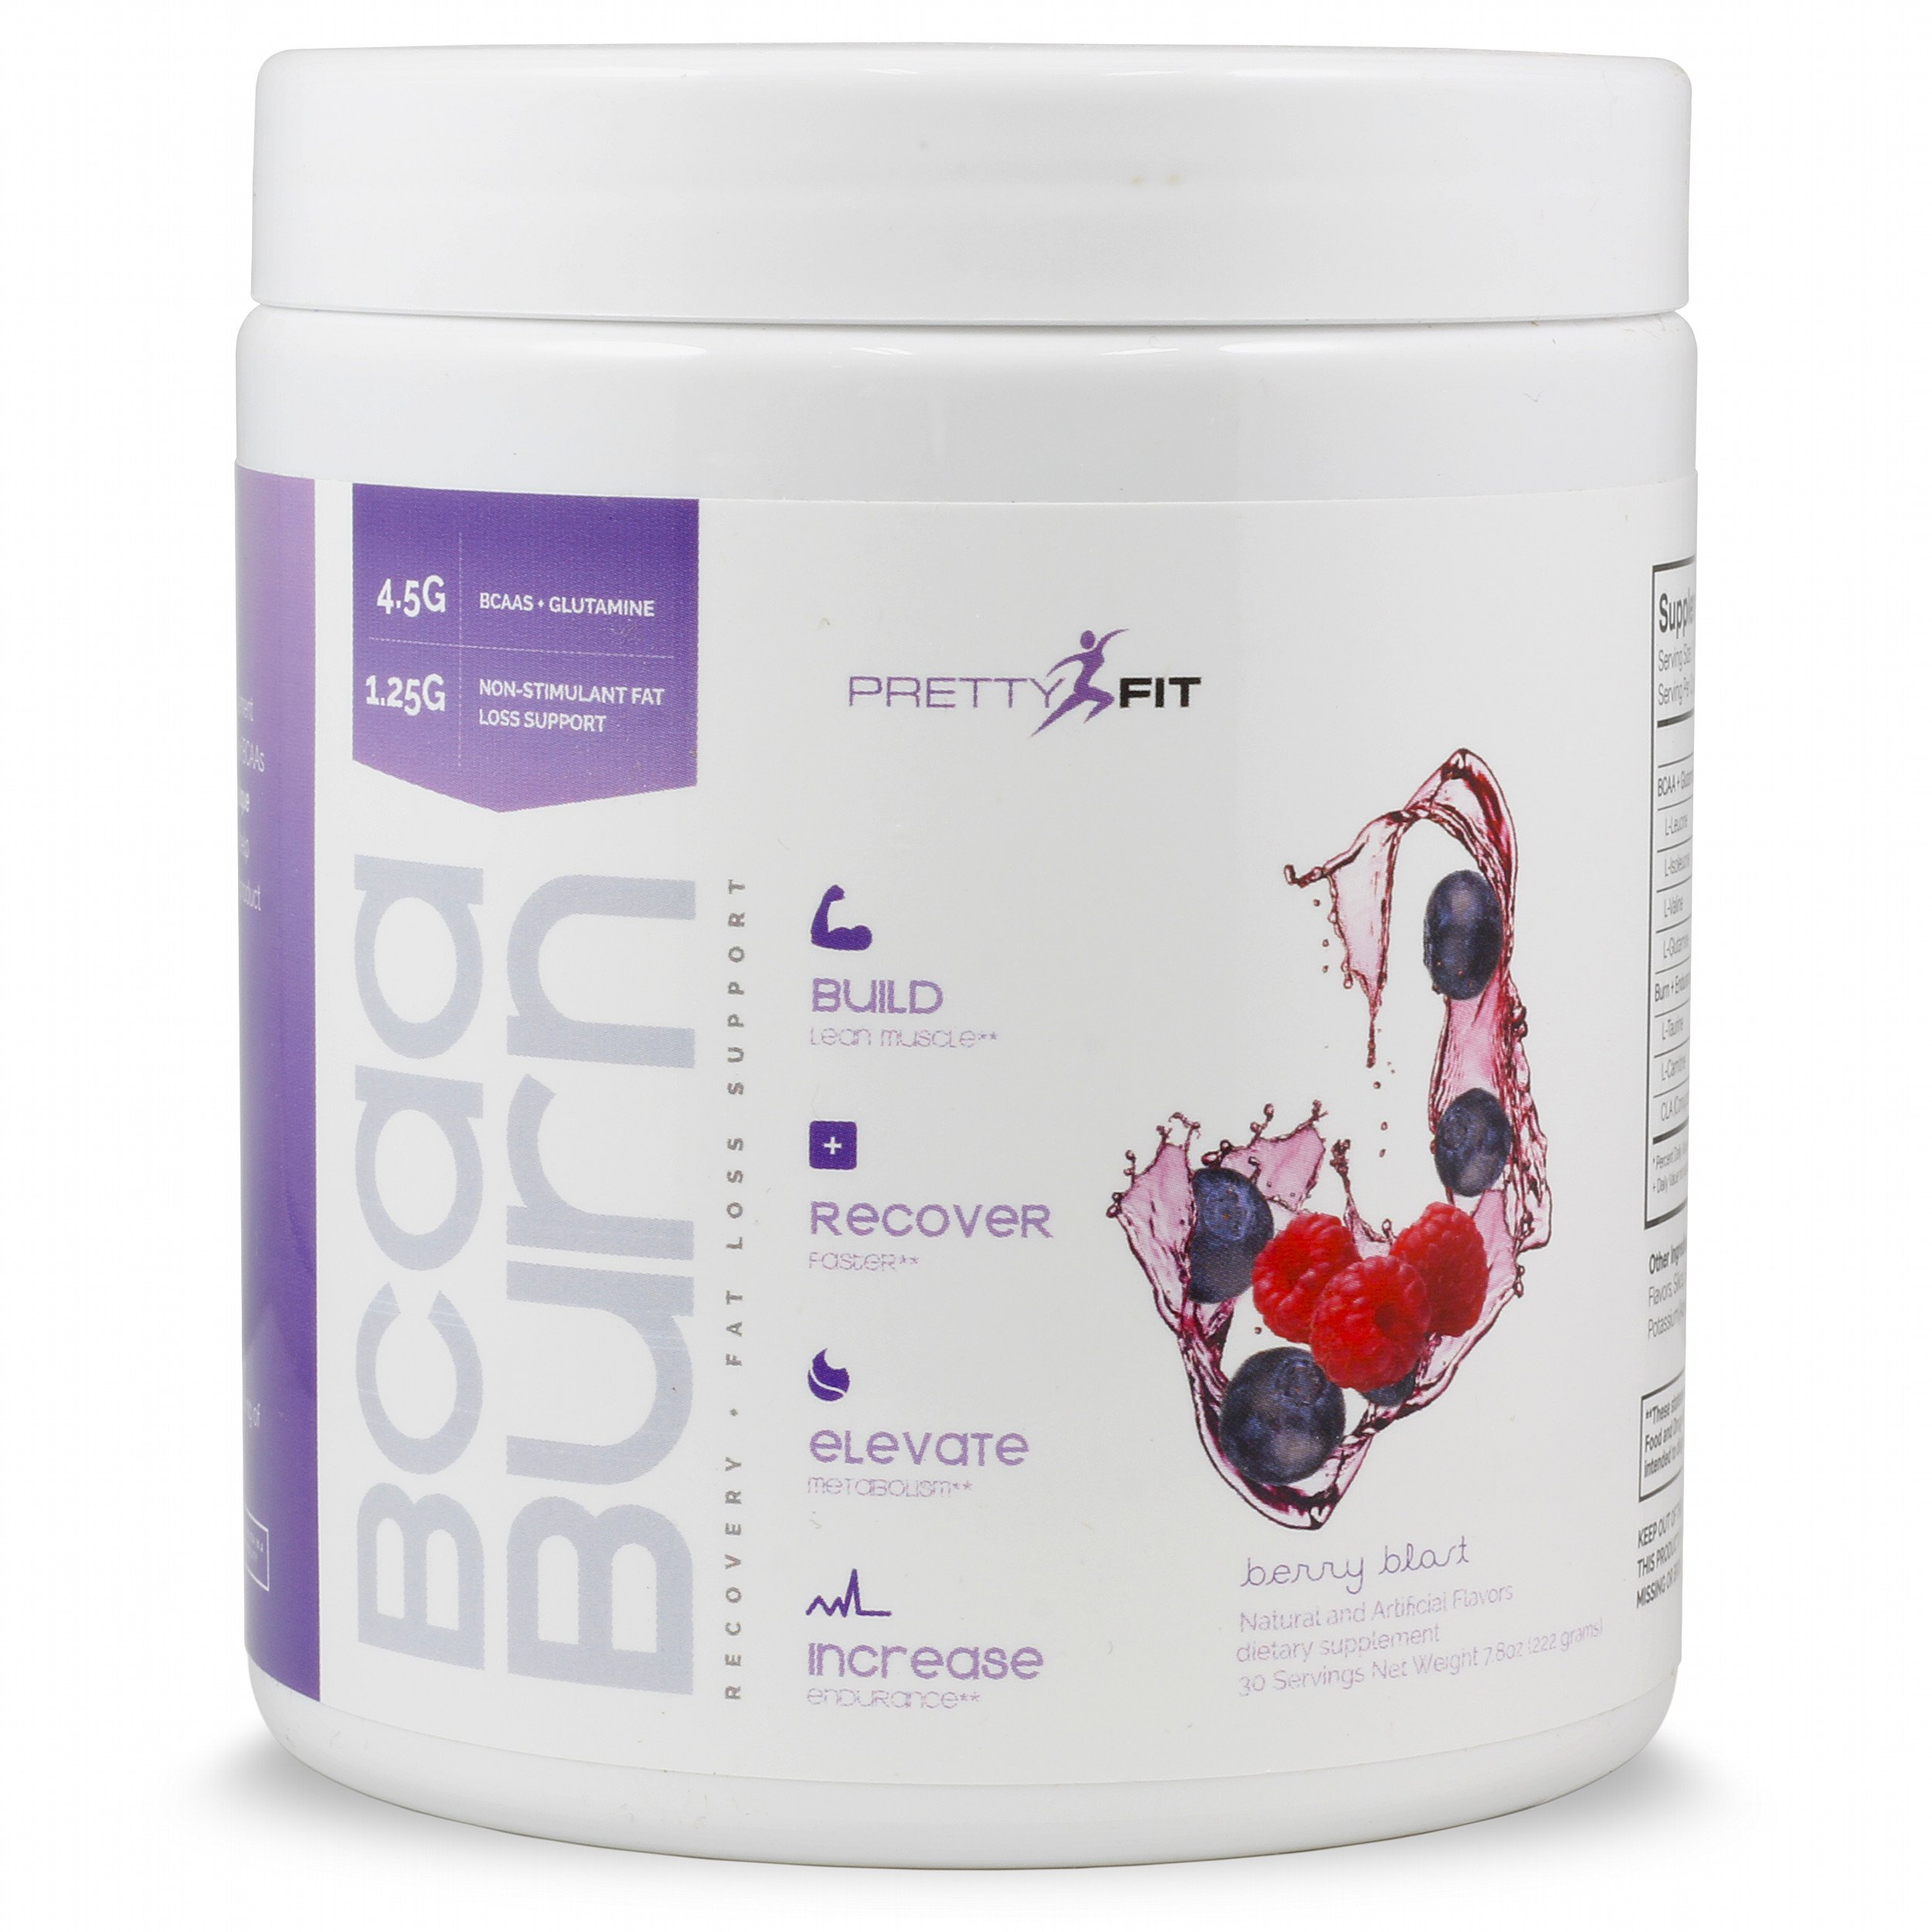 PrettyFit BCAA Burn - 30 Servings - Berry Blast - BCAAs for Women - Build Lean Muscle with BCAAs, Glutamine, and Non-Stimulant Fat Burners - 0 Calories, 0 Sugars, 0 Carbs